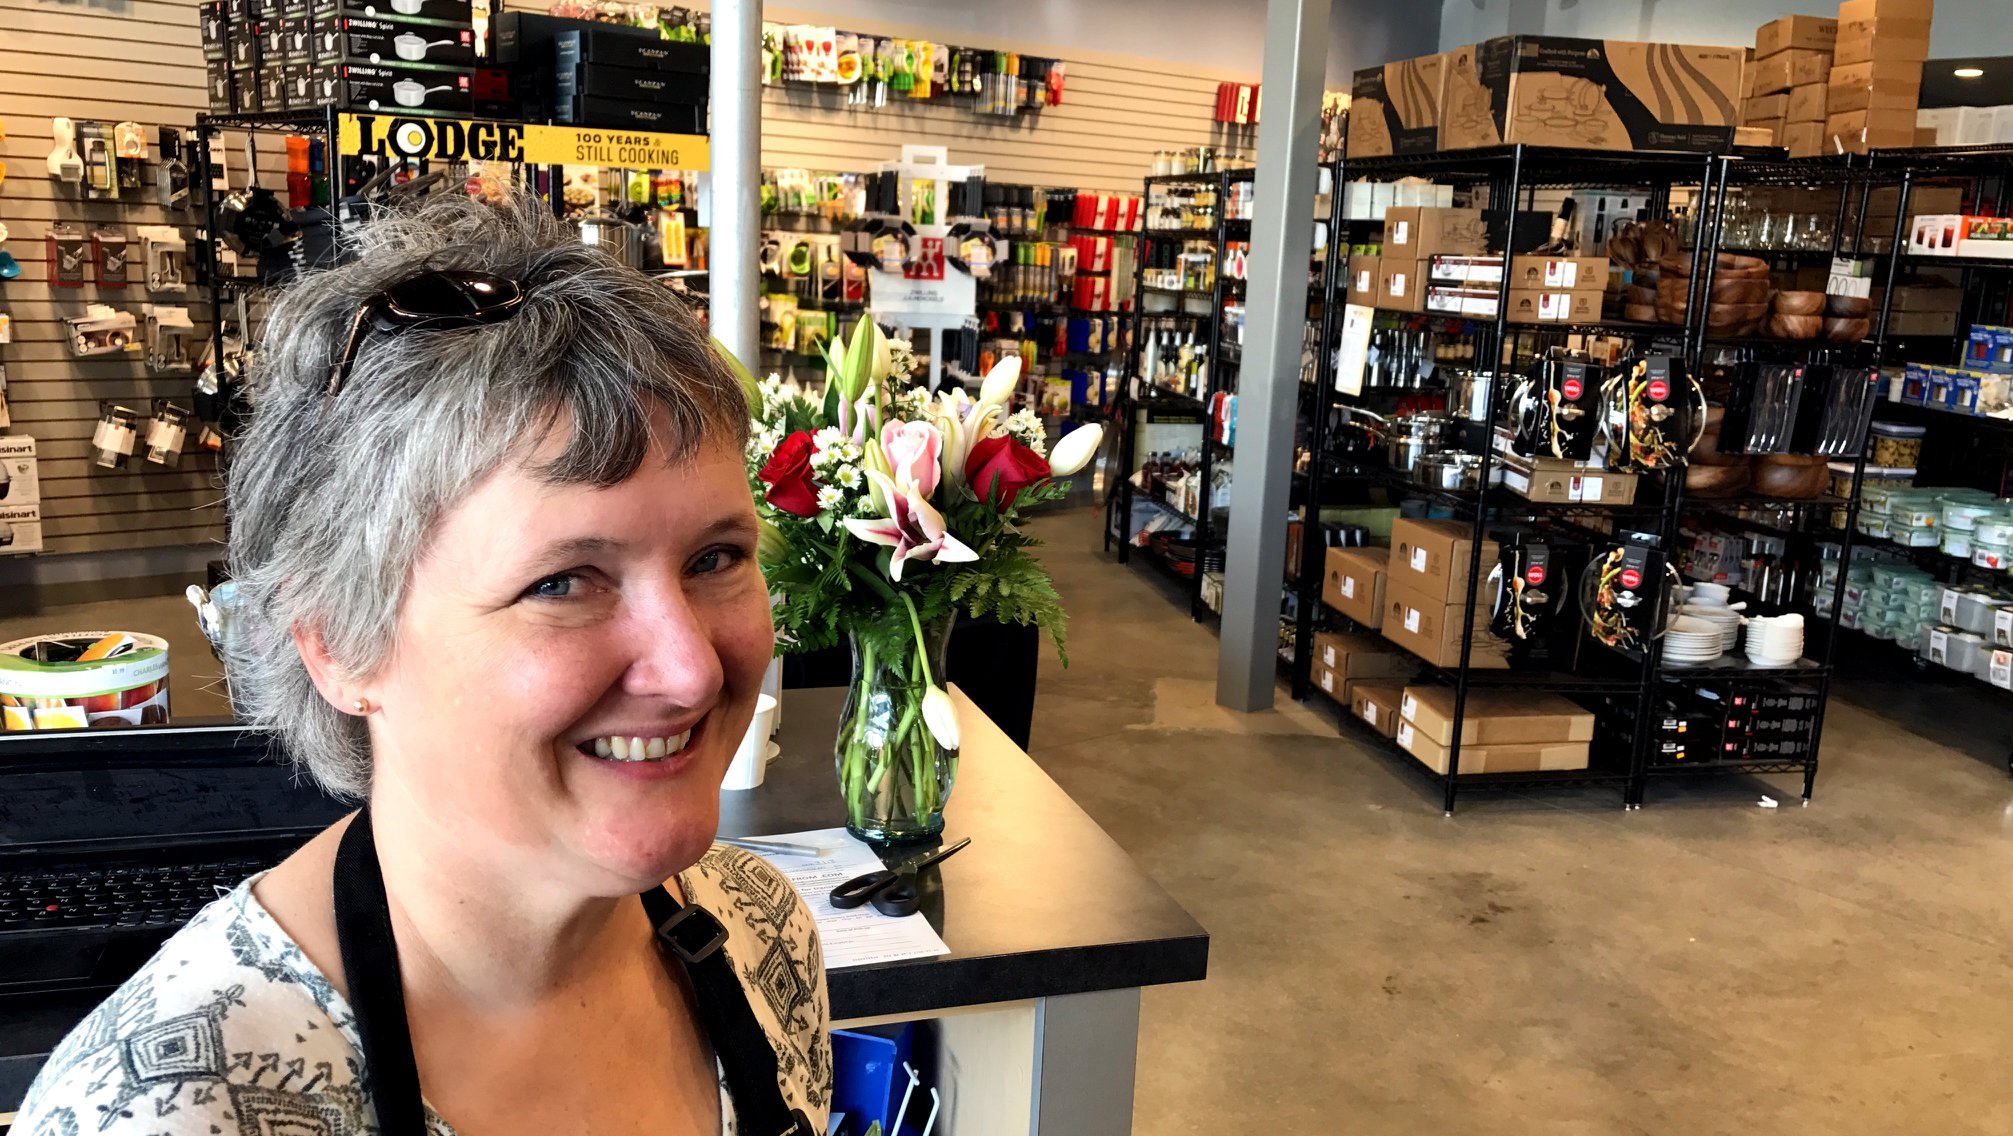 Chef Tonya Burkett - Tonya Burkett joined The Cook's Warehouse Team in 2007, but she has been part of the culinary industry for many years. Tonya launched her personal chef business in 2003 as a part time endeavor. Six years later, she had made it a full-time career. Her specialty is small in-home parties with a focus on seasonal menus that highlight local produce, dairy, and meats.  Tonya is the chef for the Decatur Arts Festival's Poster Unveiling, Artist Breakfast, and Last Call. She also works with Le Creuset providing cookware demonstrations of their product line. She is a member of the United States Personal Chef Association and the Atlanta Independent Women's Network.